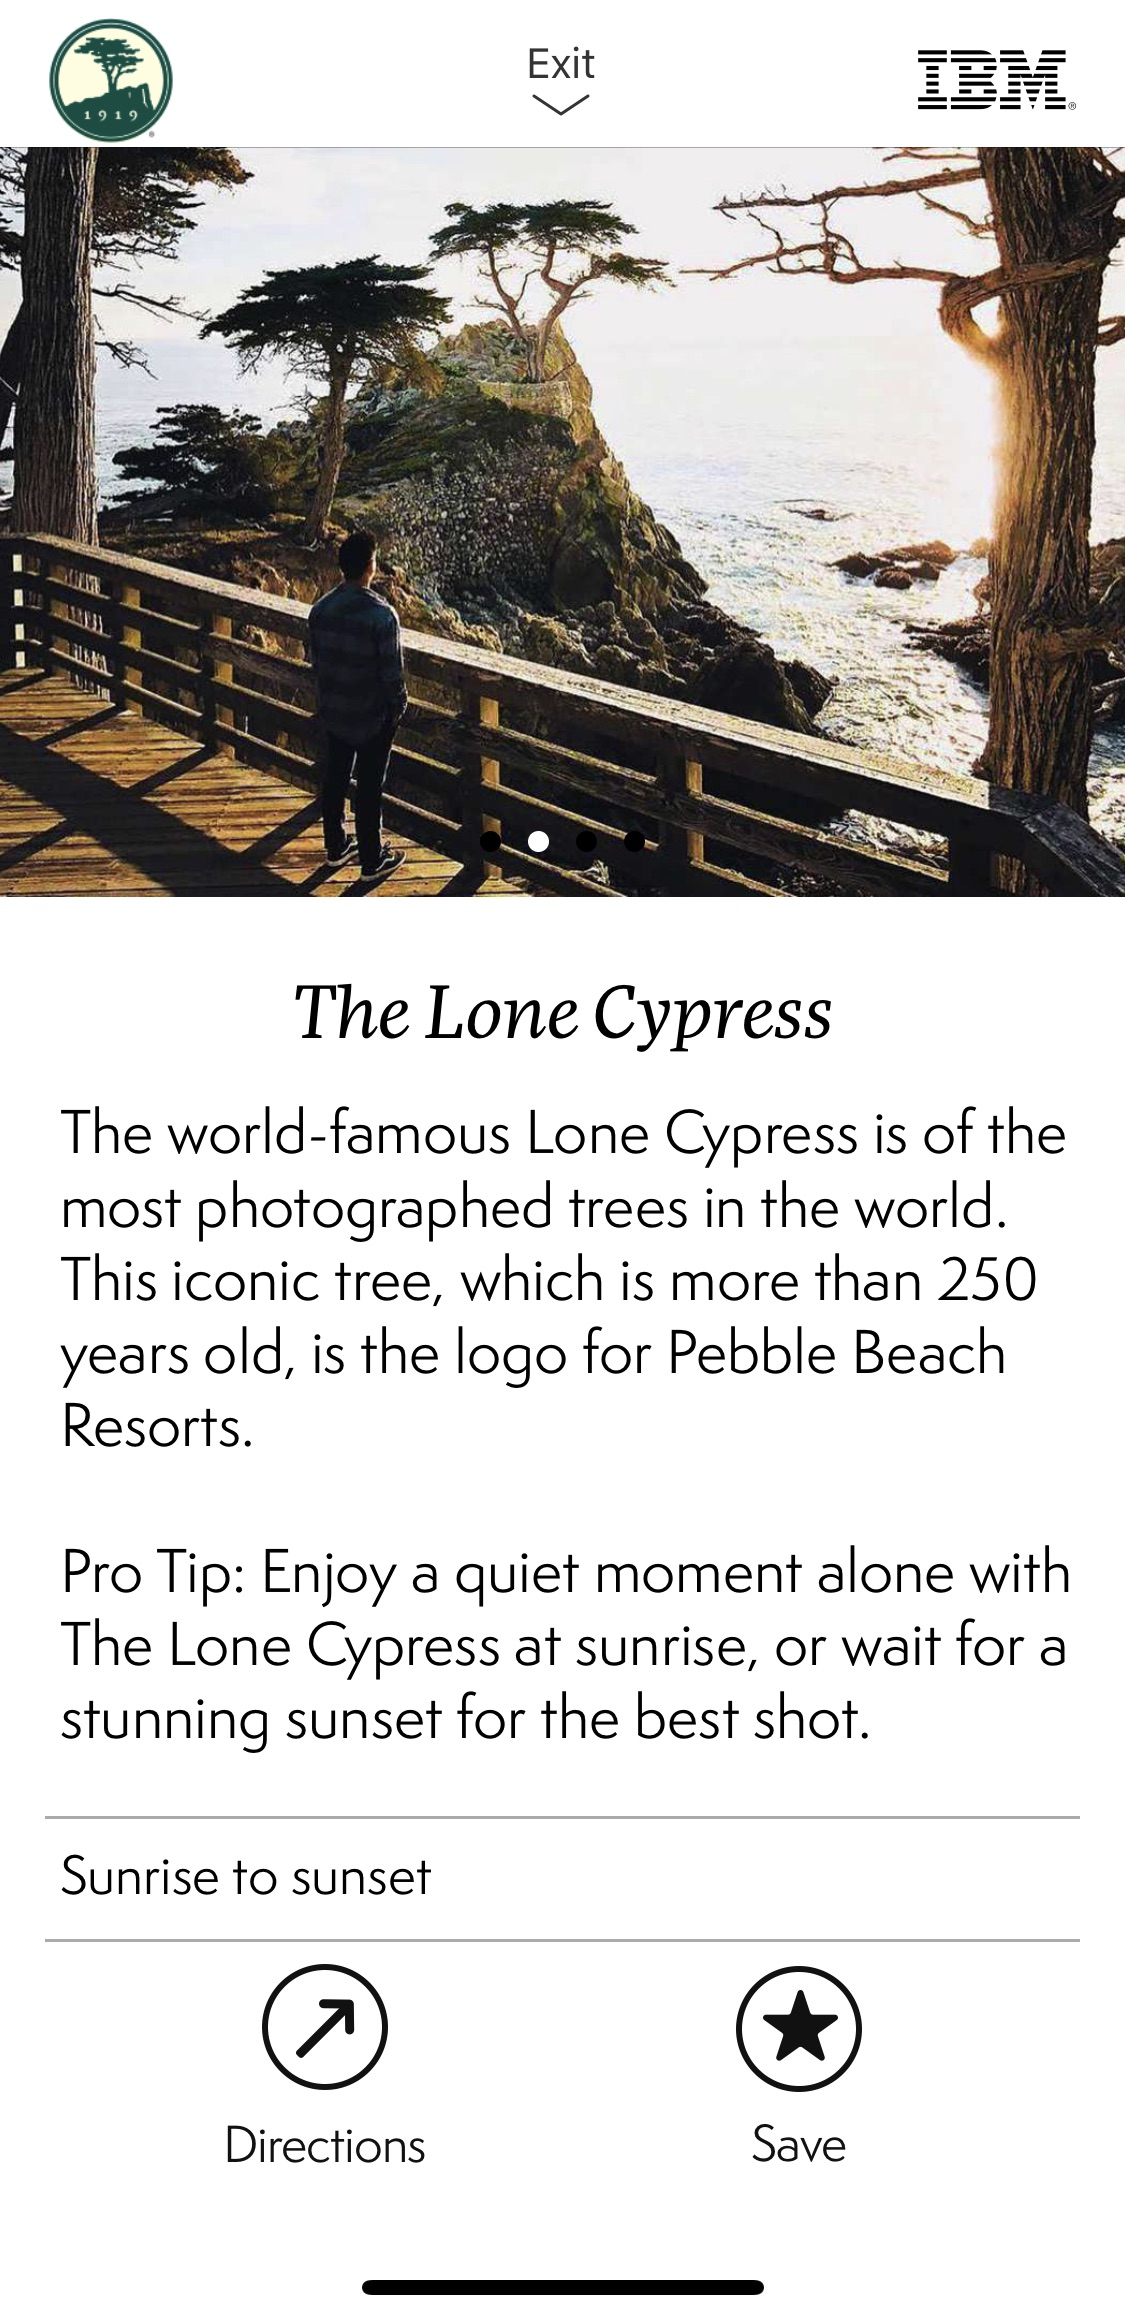 The Lone Cypress Pro Tip in the app